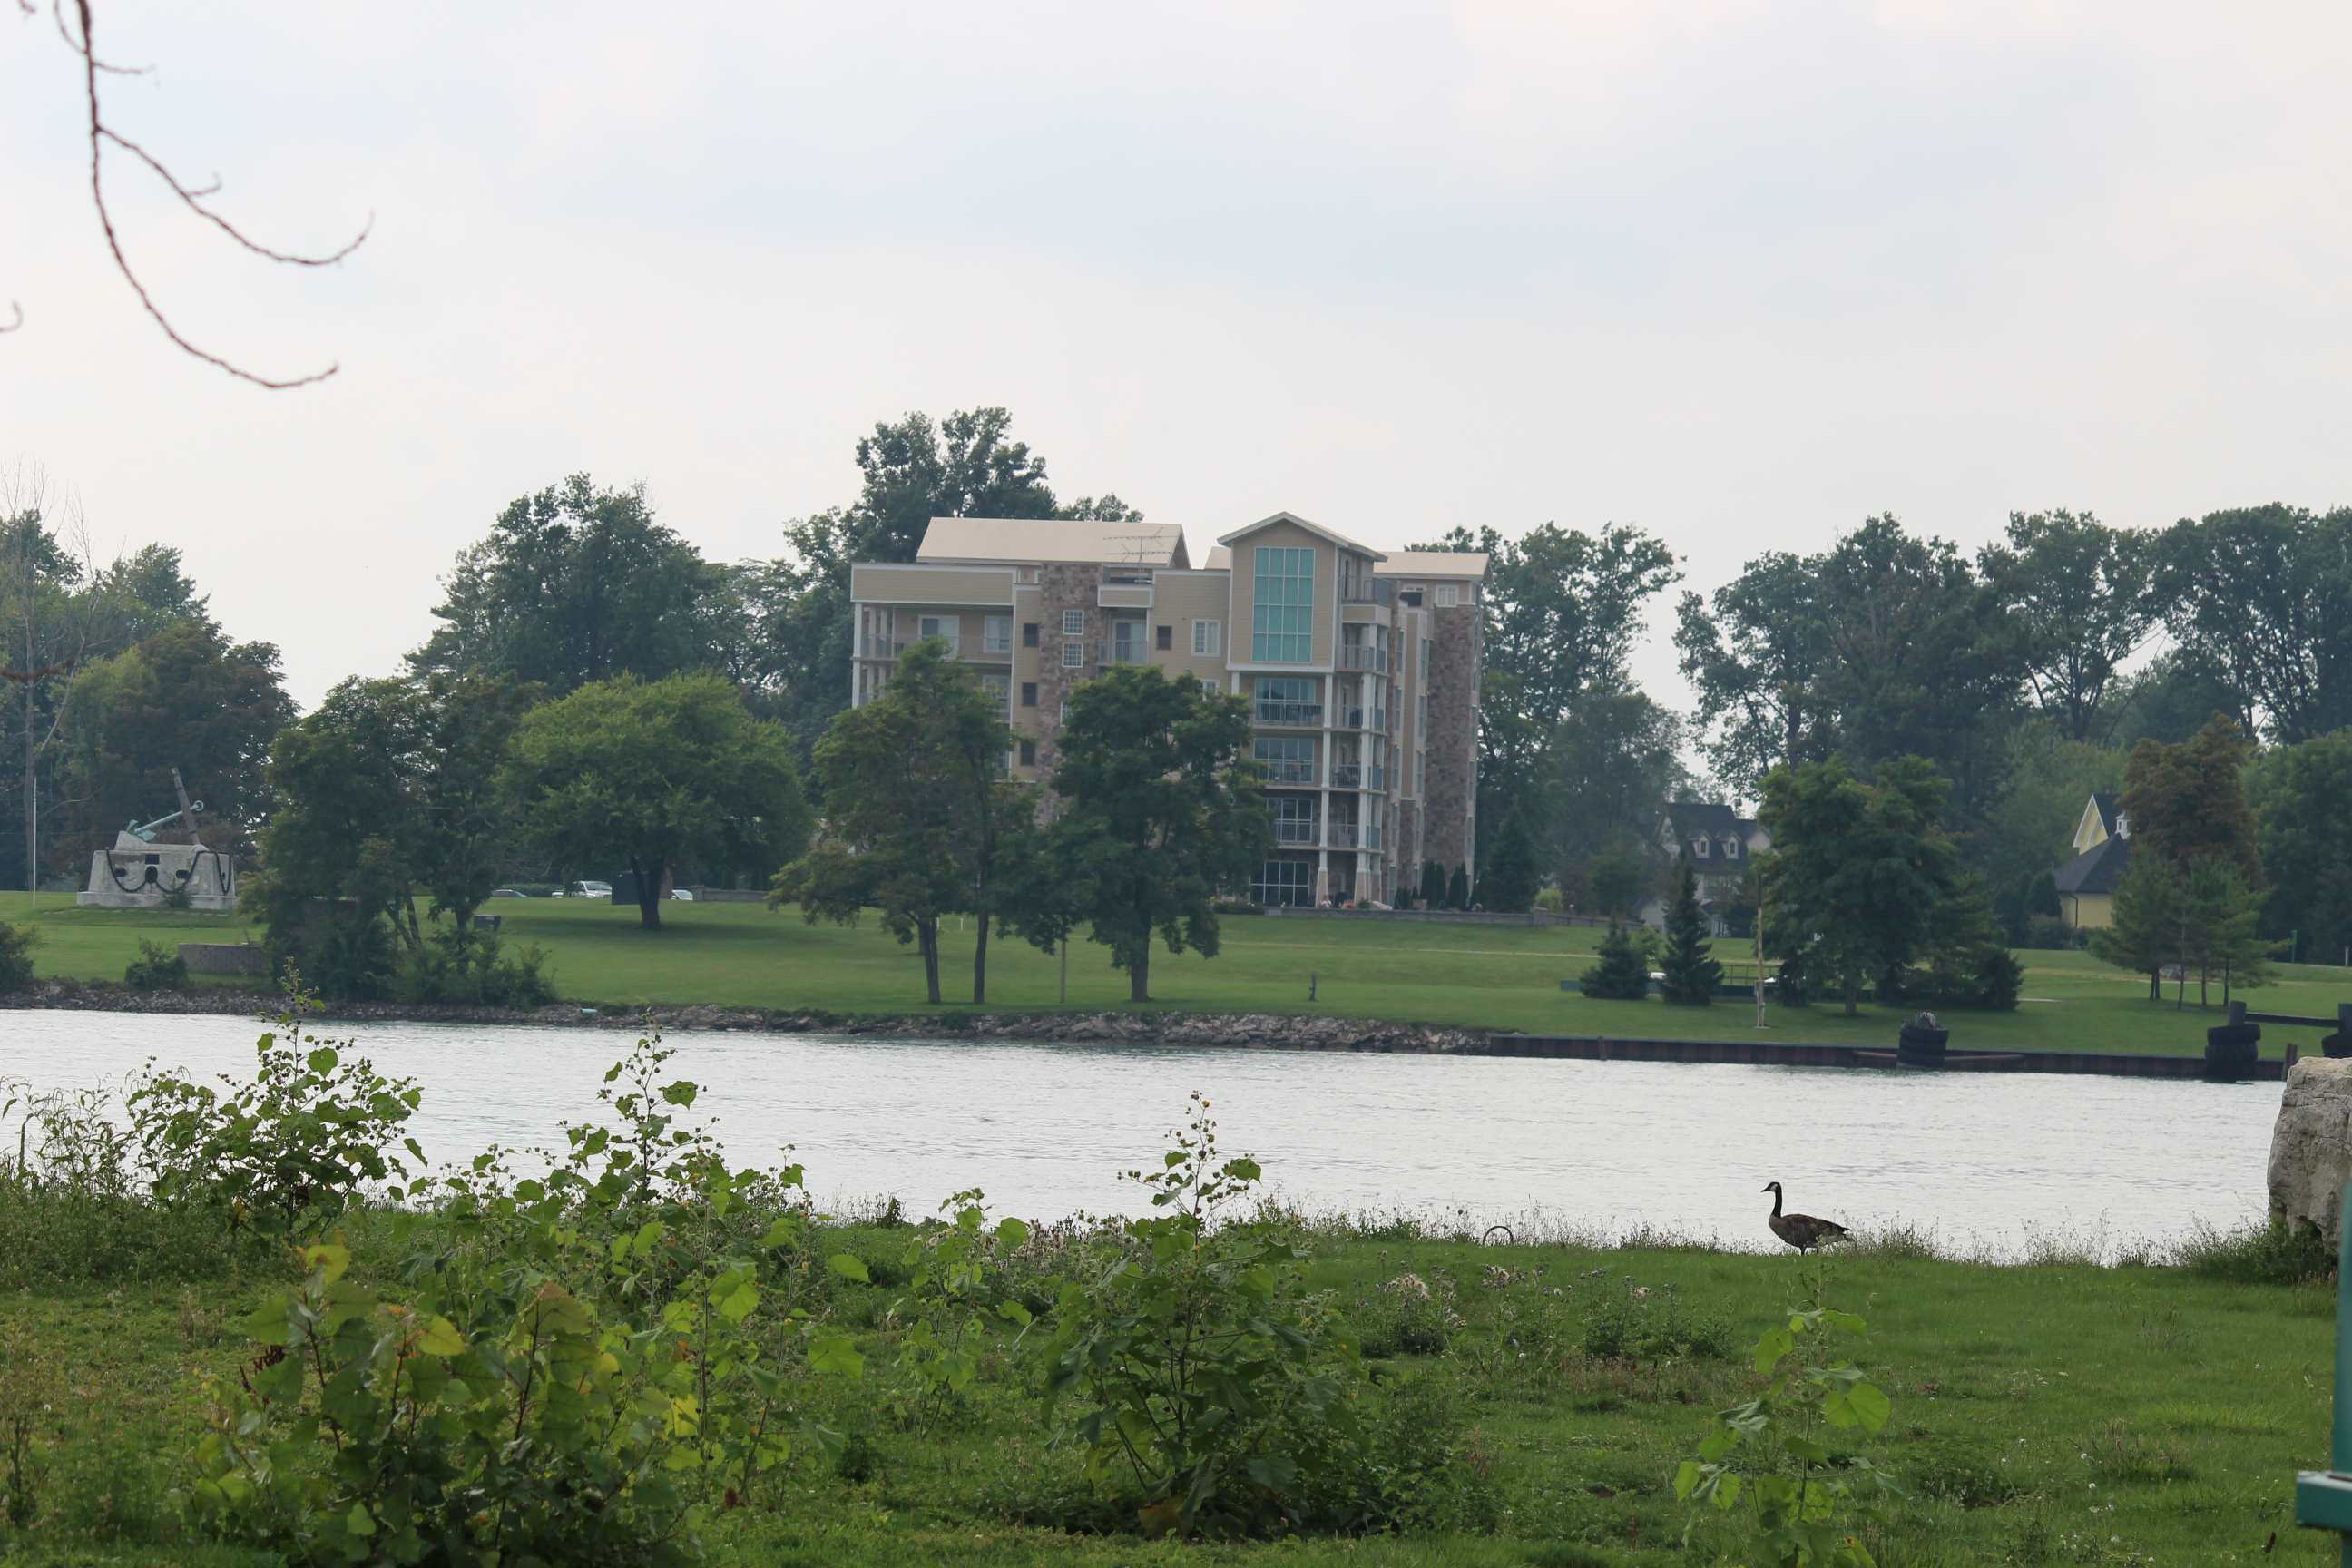 Homes on Boblo Island in the Detroit River. (Photo by Adelle Loiselle.)